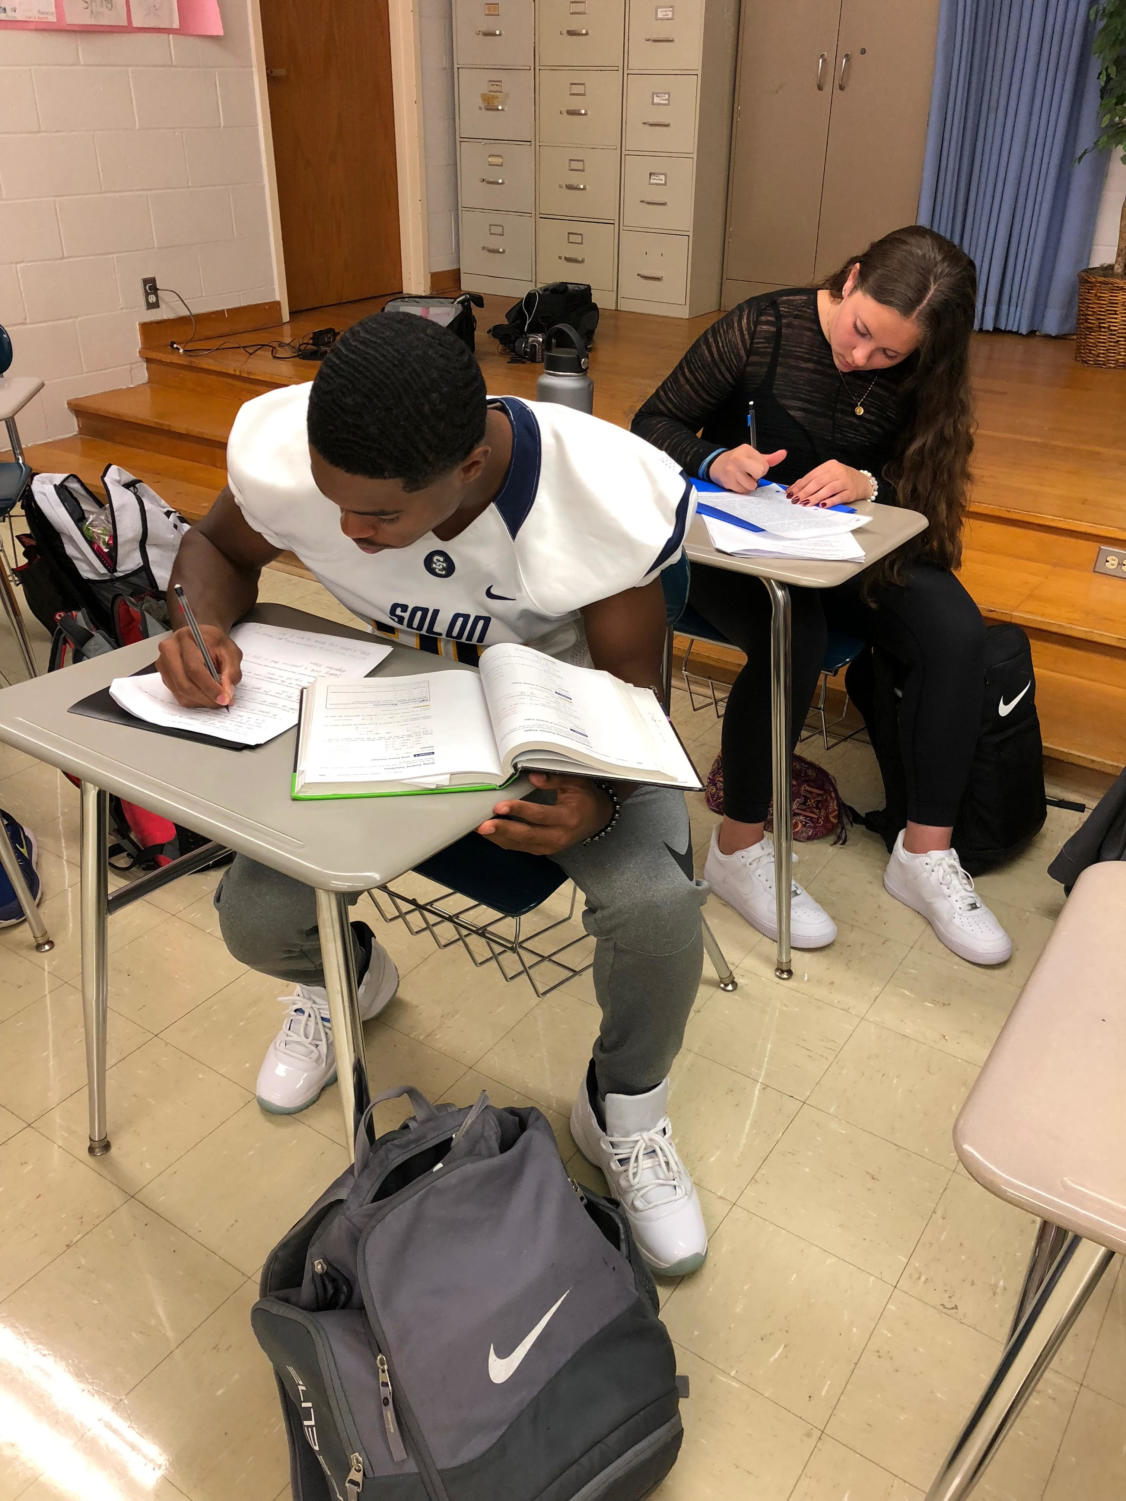 Solon High School students Kevin Perry and Skyla Caito do homework.